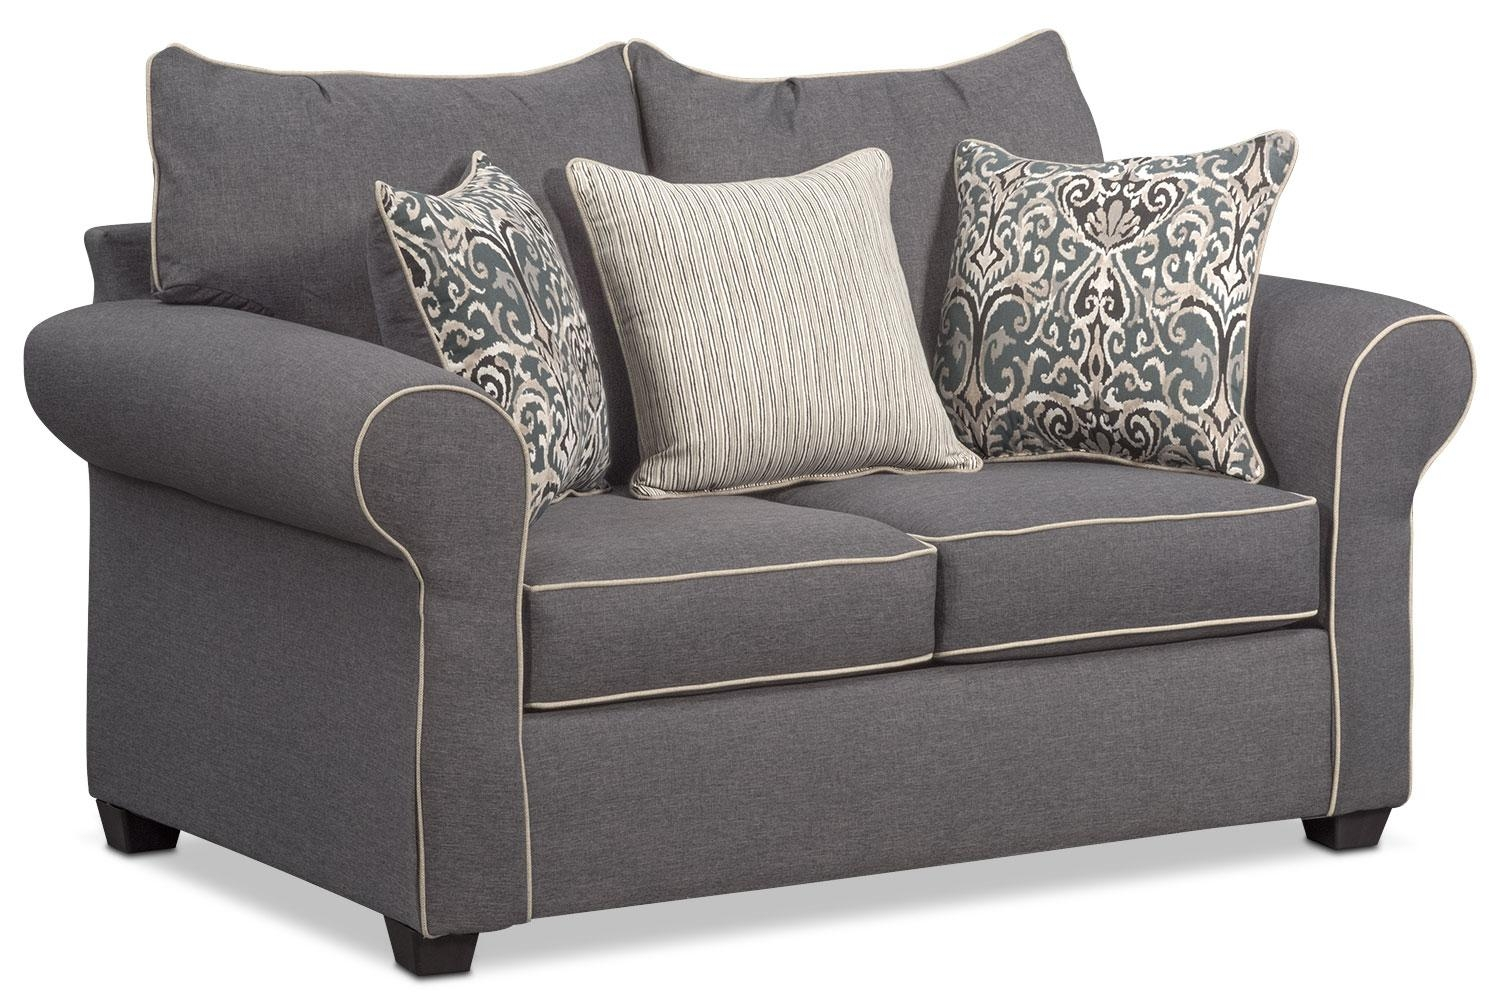 Carla Sofa, Loveseat, And Chair Set – Gray | Value City Furniture Throughout Sofa Loveseat And Chair Set (View 13 of 20)